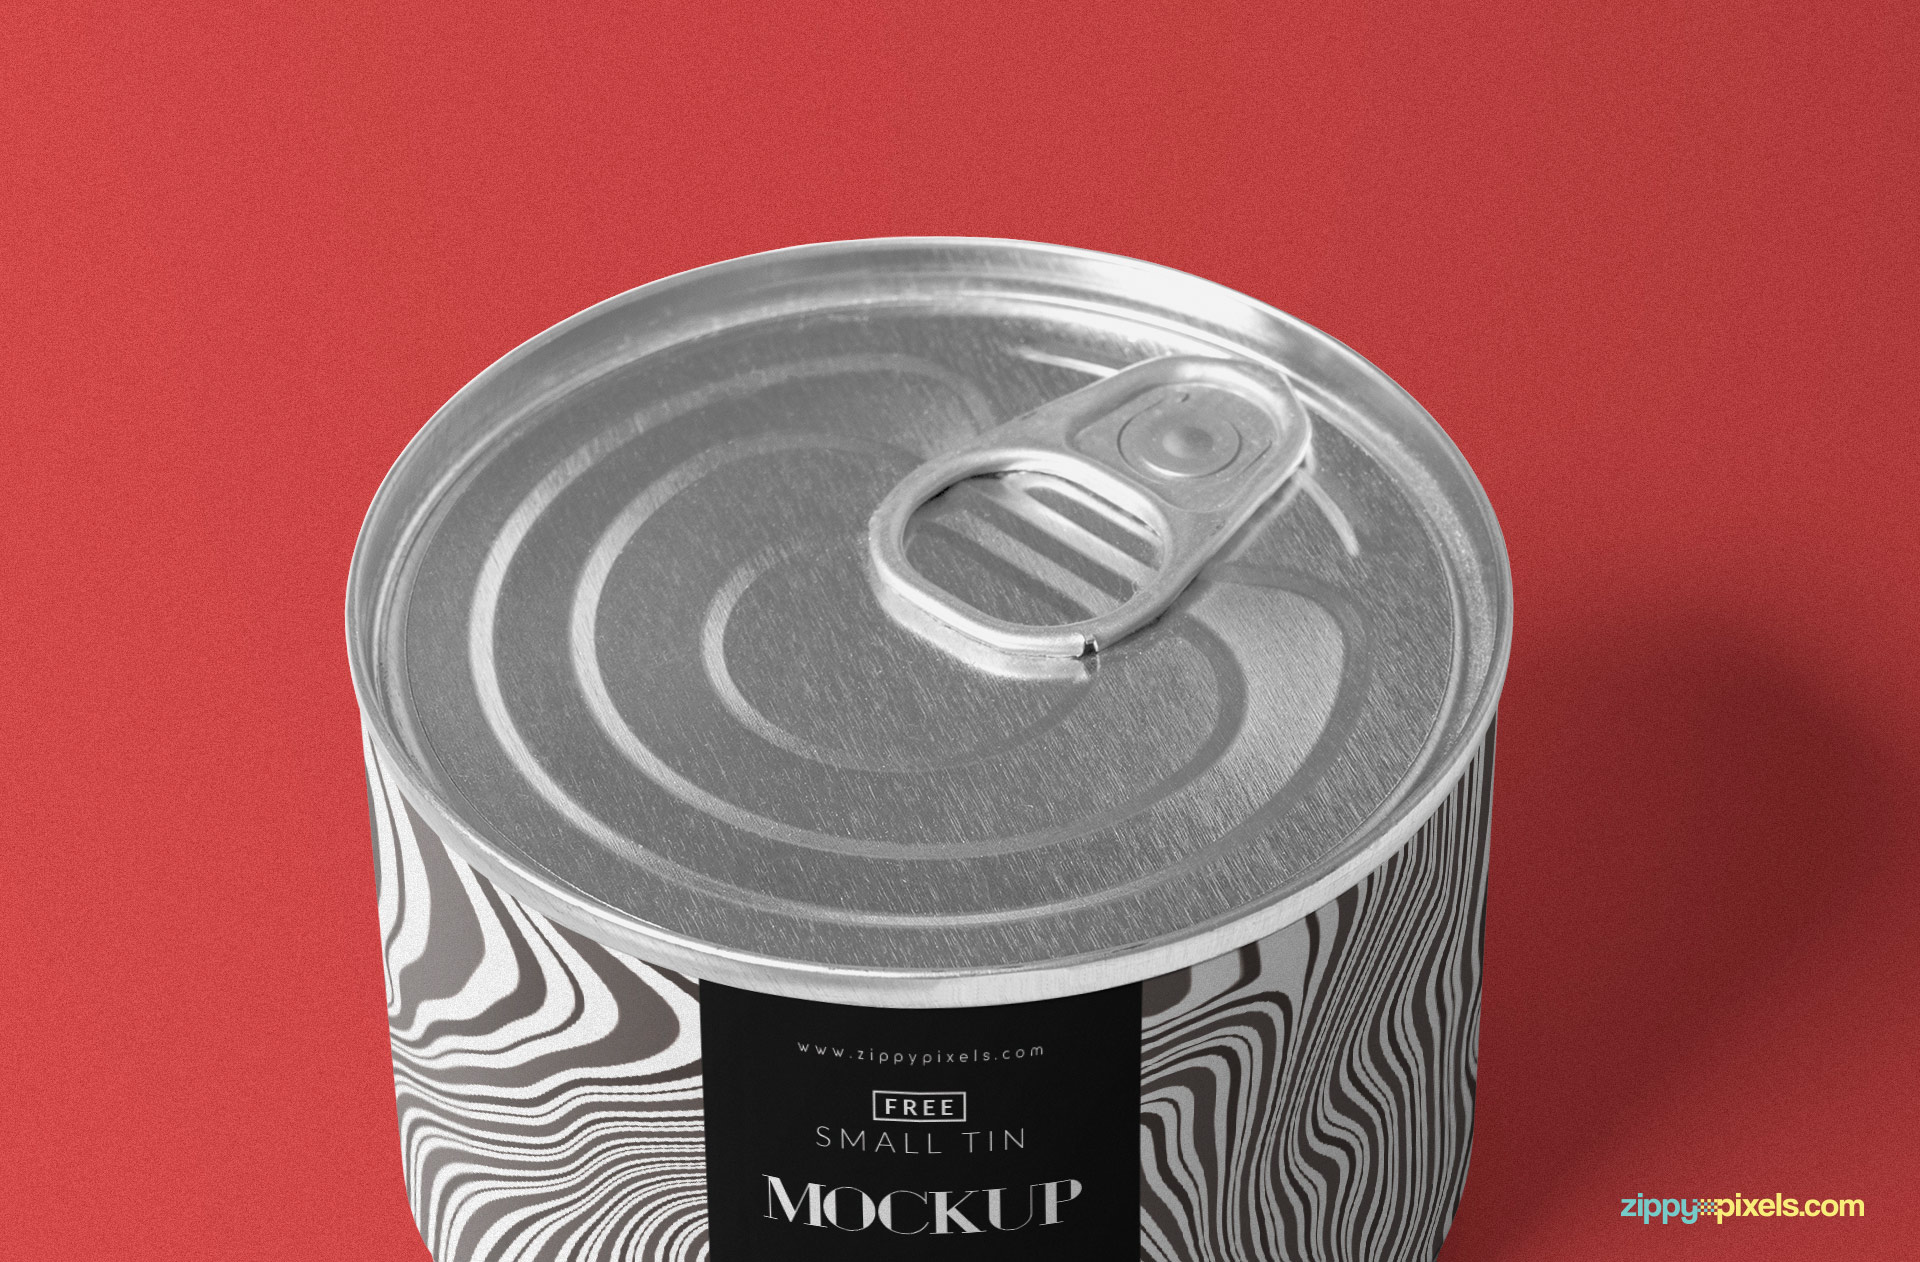 You can change the top design of the tin mockup.